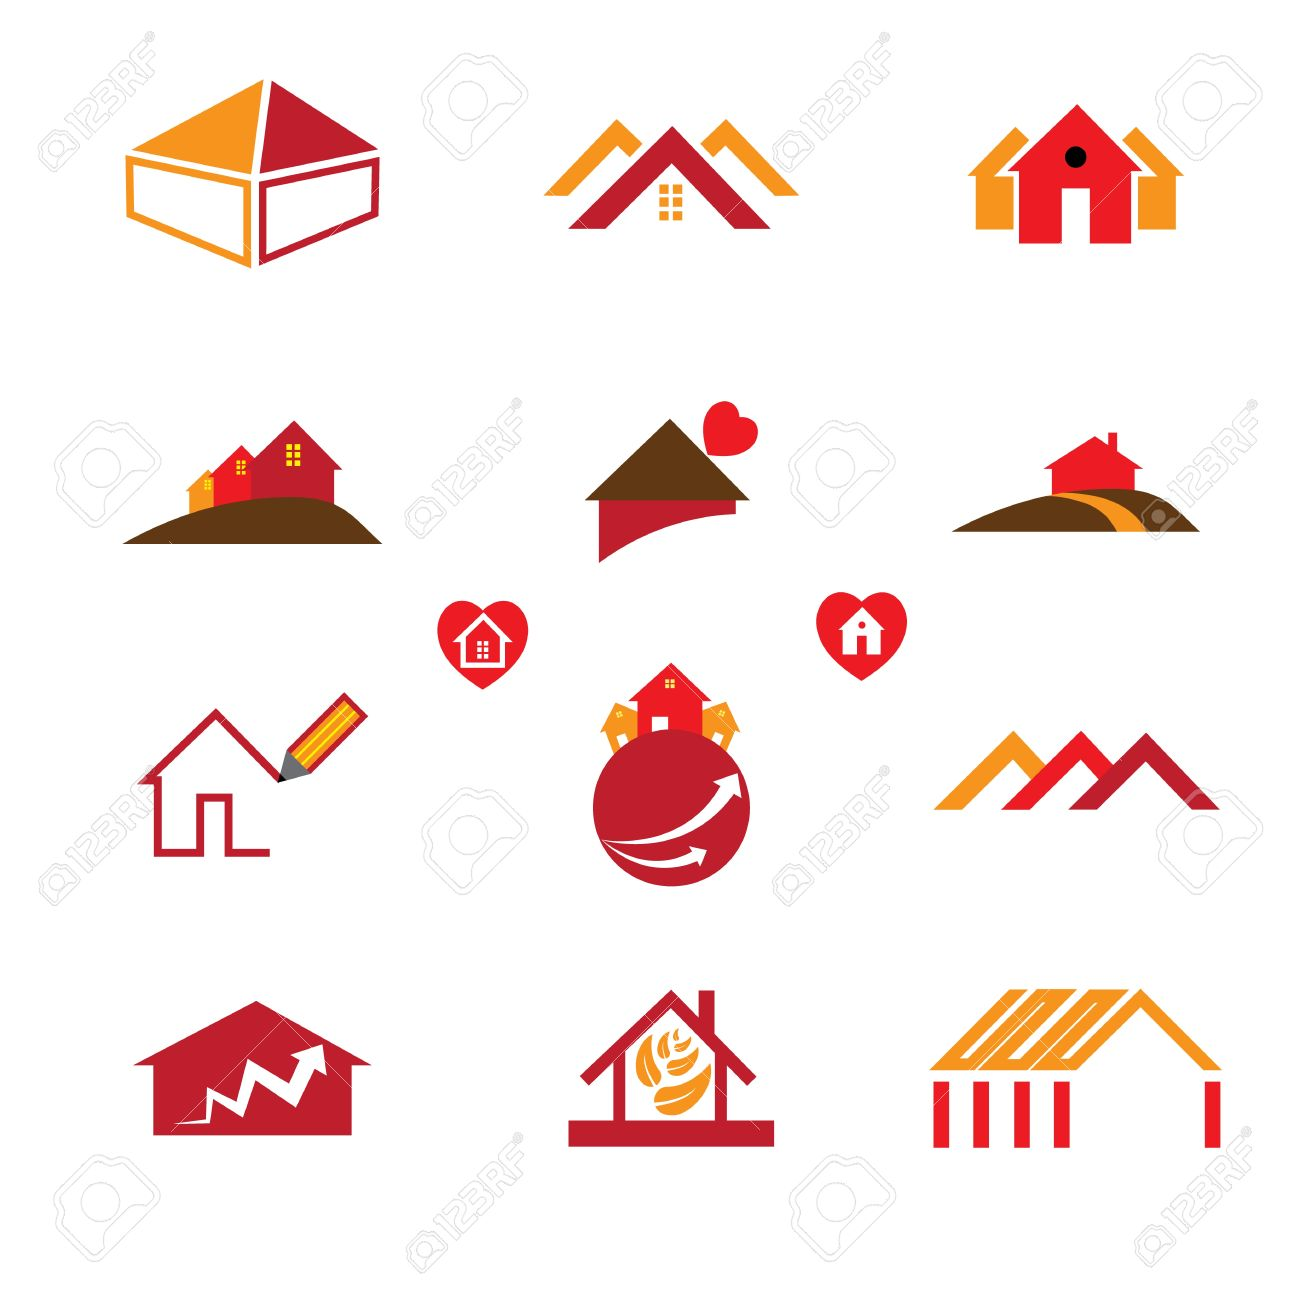 House And Office Logo Icons For Real Estate Business Requirements ...